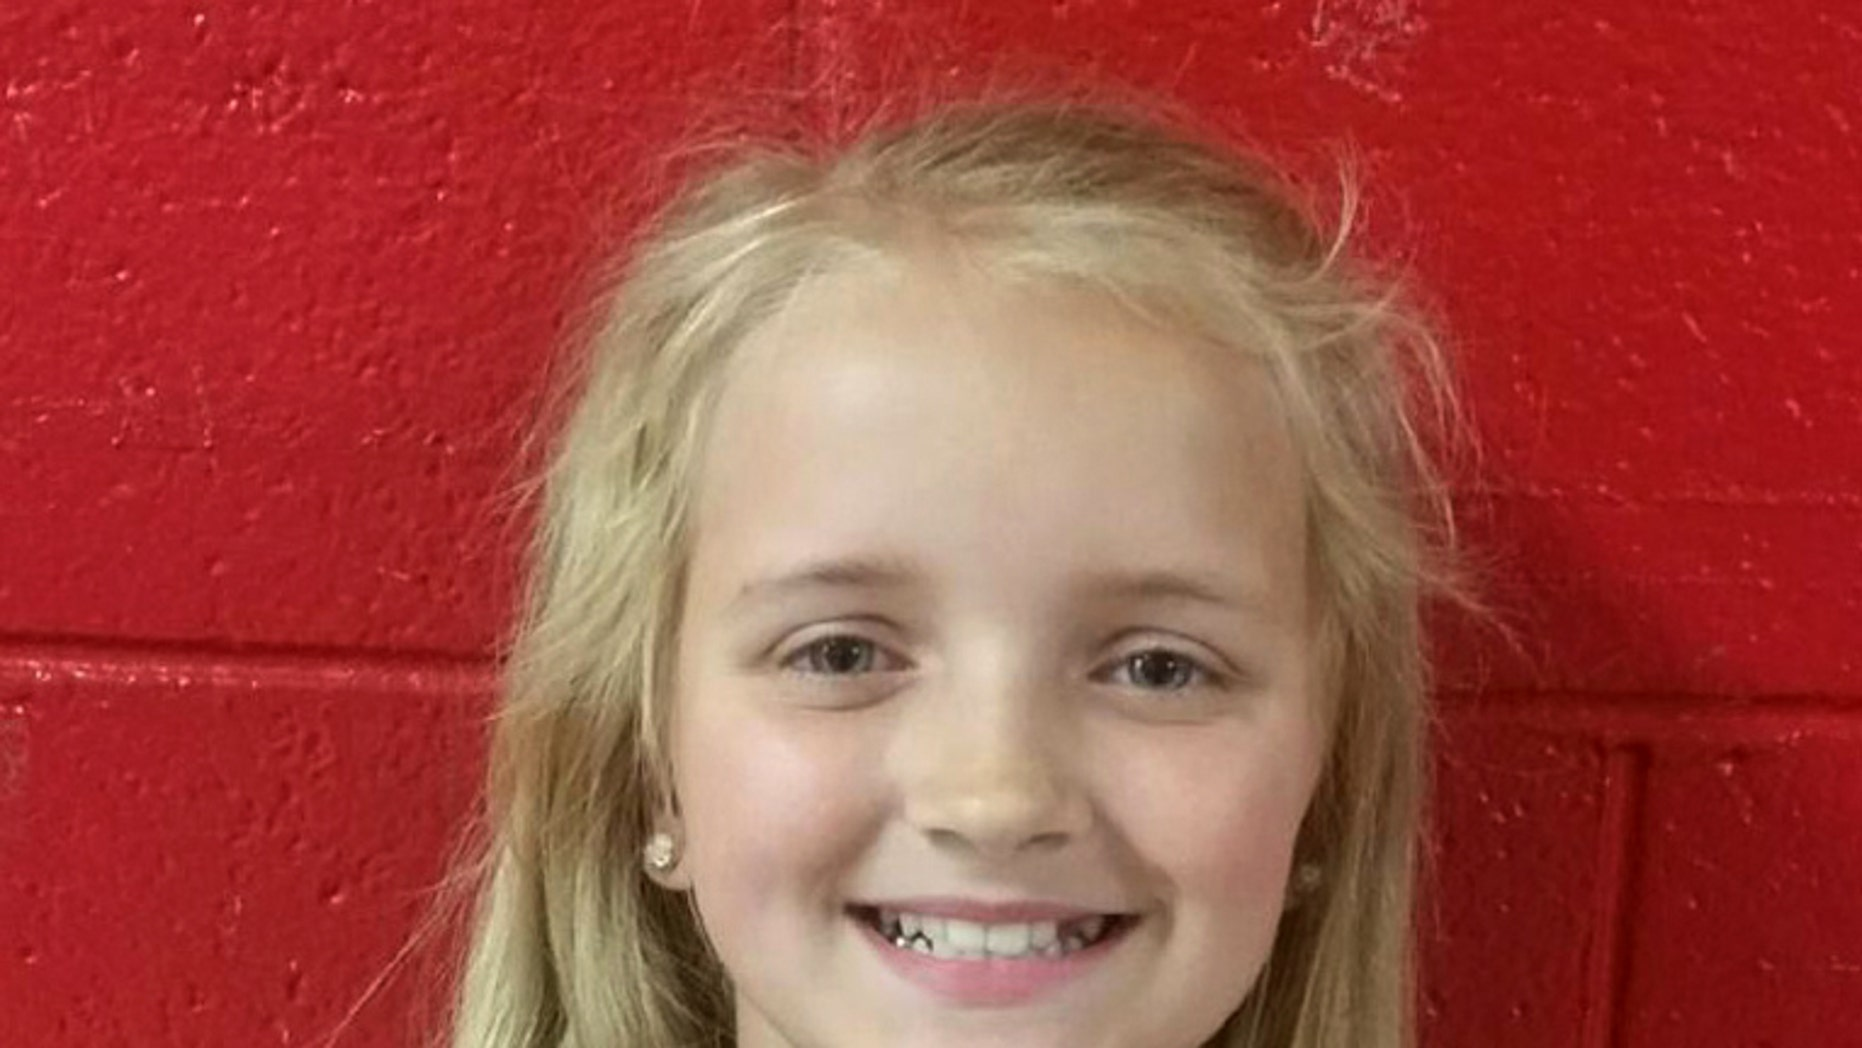 Carlie Marie Trentd is seen in an undated photoprovided by  the Tennessee Bureau of Investigation via the Rogersville Police Department. 9-year-old Carlie Marie Trent of Rogersville was reported missing on Wednesday, May 4, 2016, after a non-custodial uncle, Gary Simpson, signed her out of school under false pretenses. Carlie is described as having blonde hair and blue eyes. She is about 4-foot 8-inches tall and weighs about 75 pounds. She was last seen with Simpson.  (Tennessee Bureau of Investigation via the Rogersville Police Department via AP)